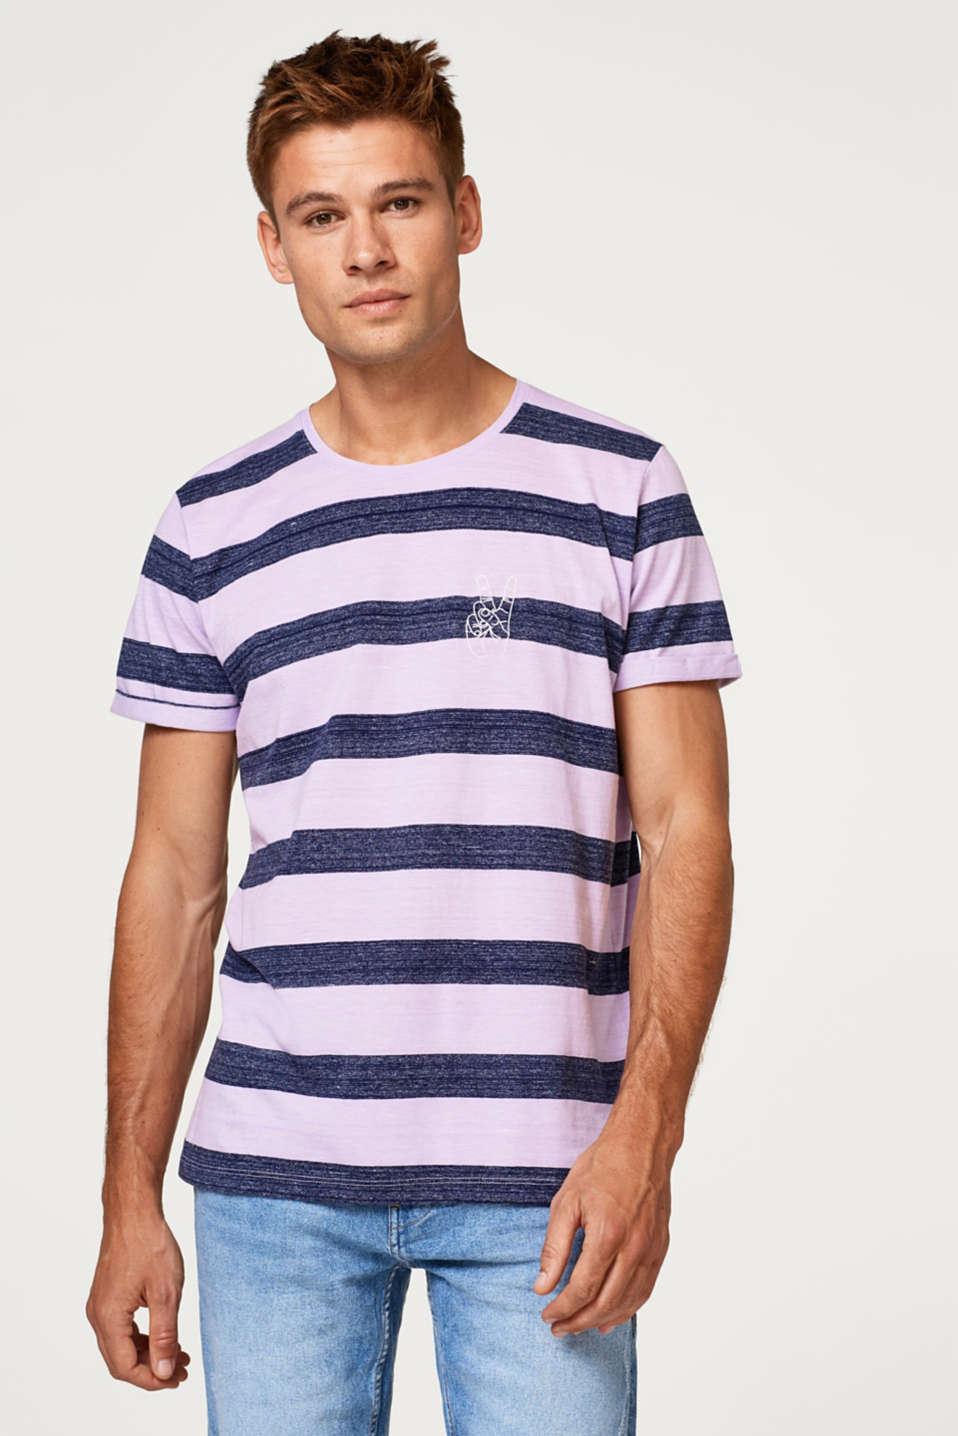 edc - Jersey T-shirt with stitching and stripes